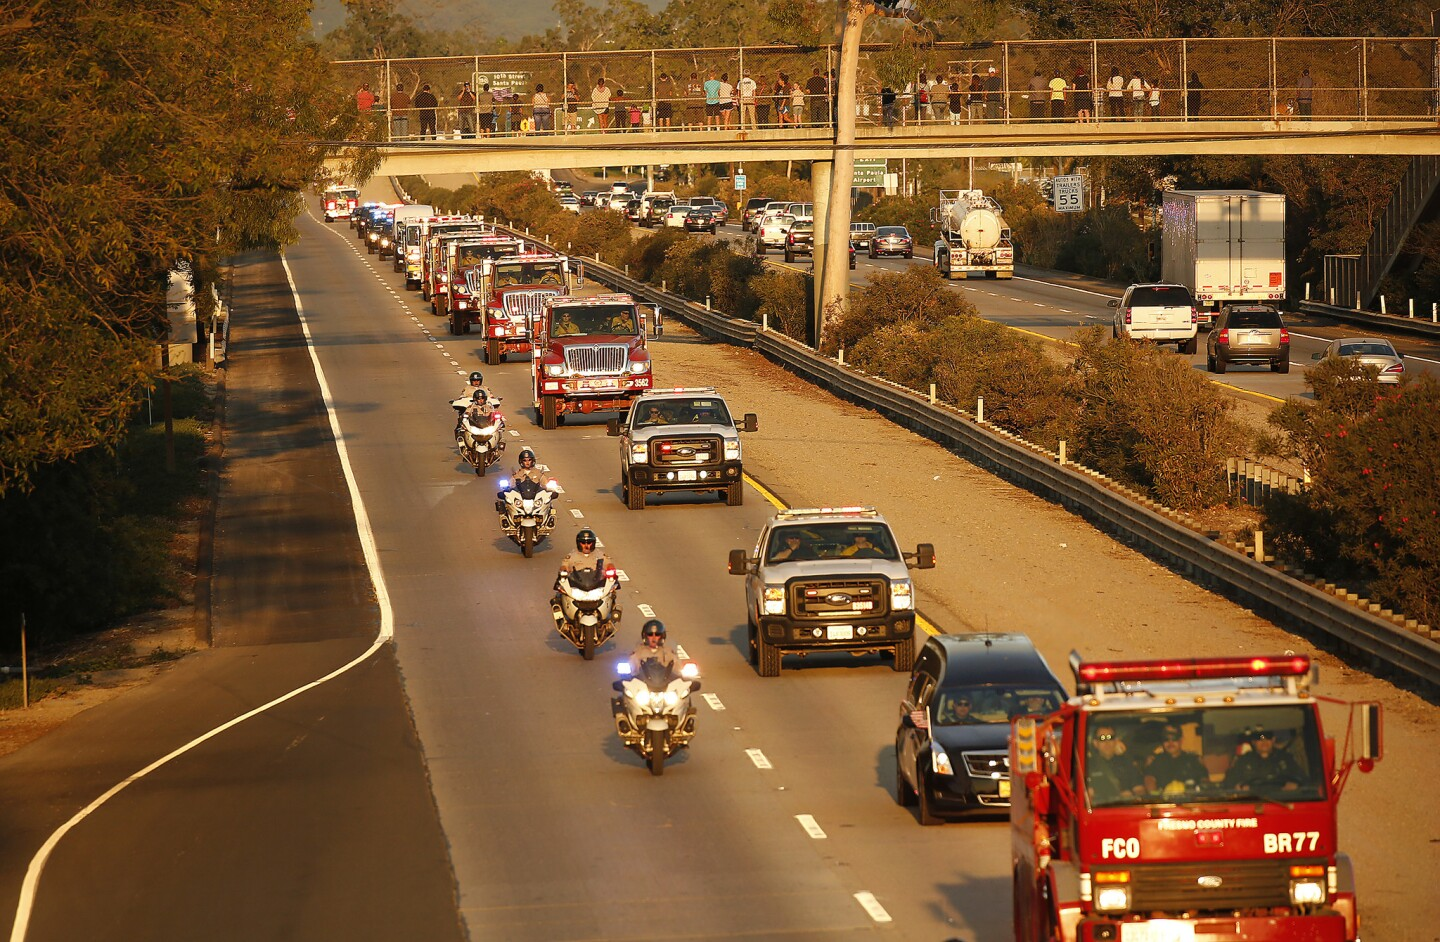 A motorcade proceeds down Highway 126 in Santa Paula carrying the body of firefighter Cory Iverson, 32, who died Thursday morning while battling the Thomas fire outside Fillmore.